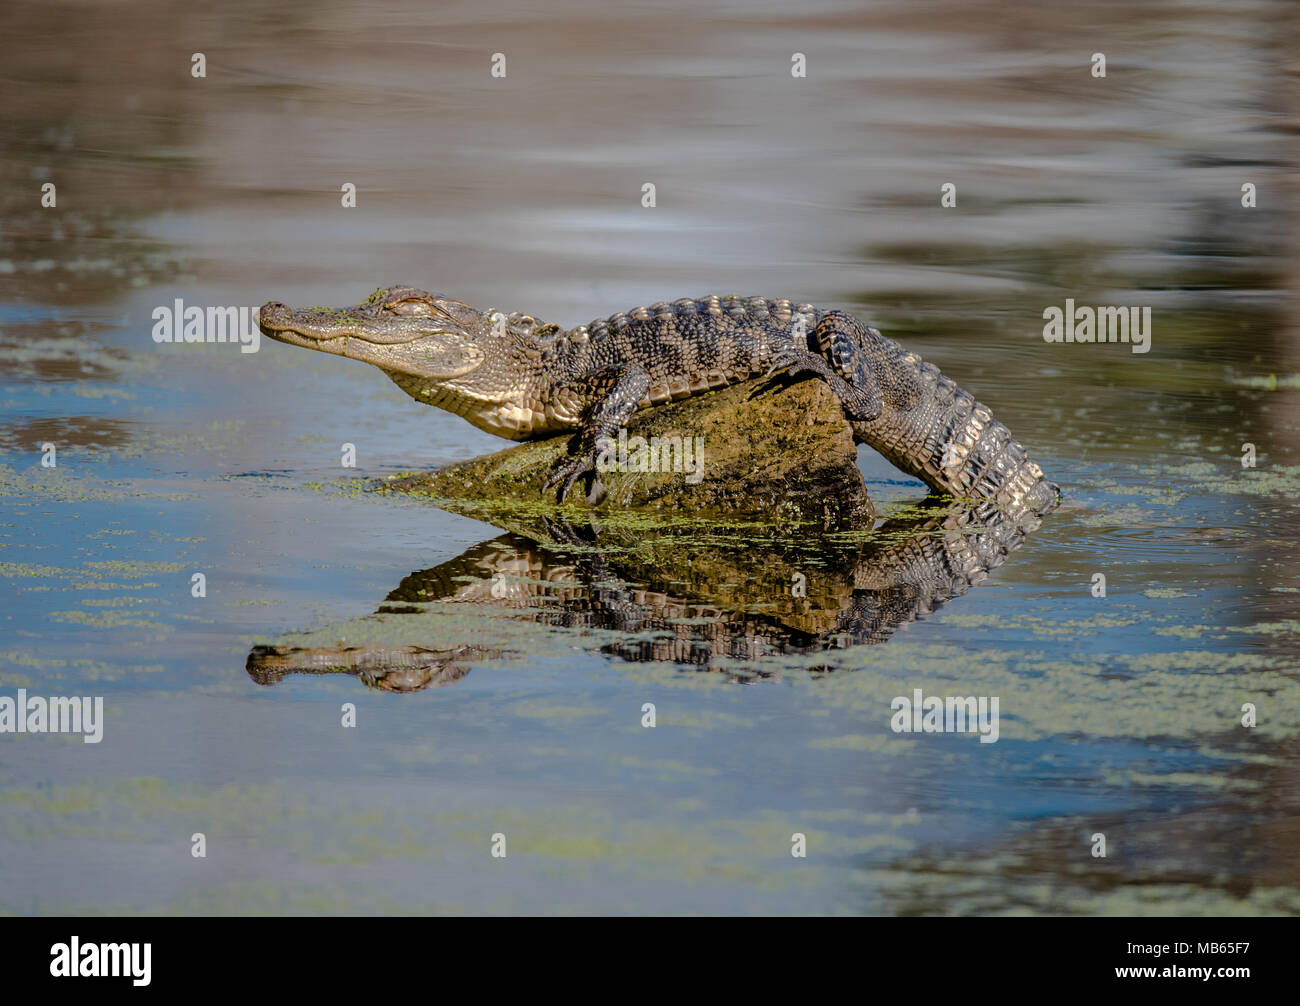 Young Alligator - Stock Image